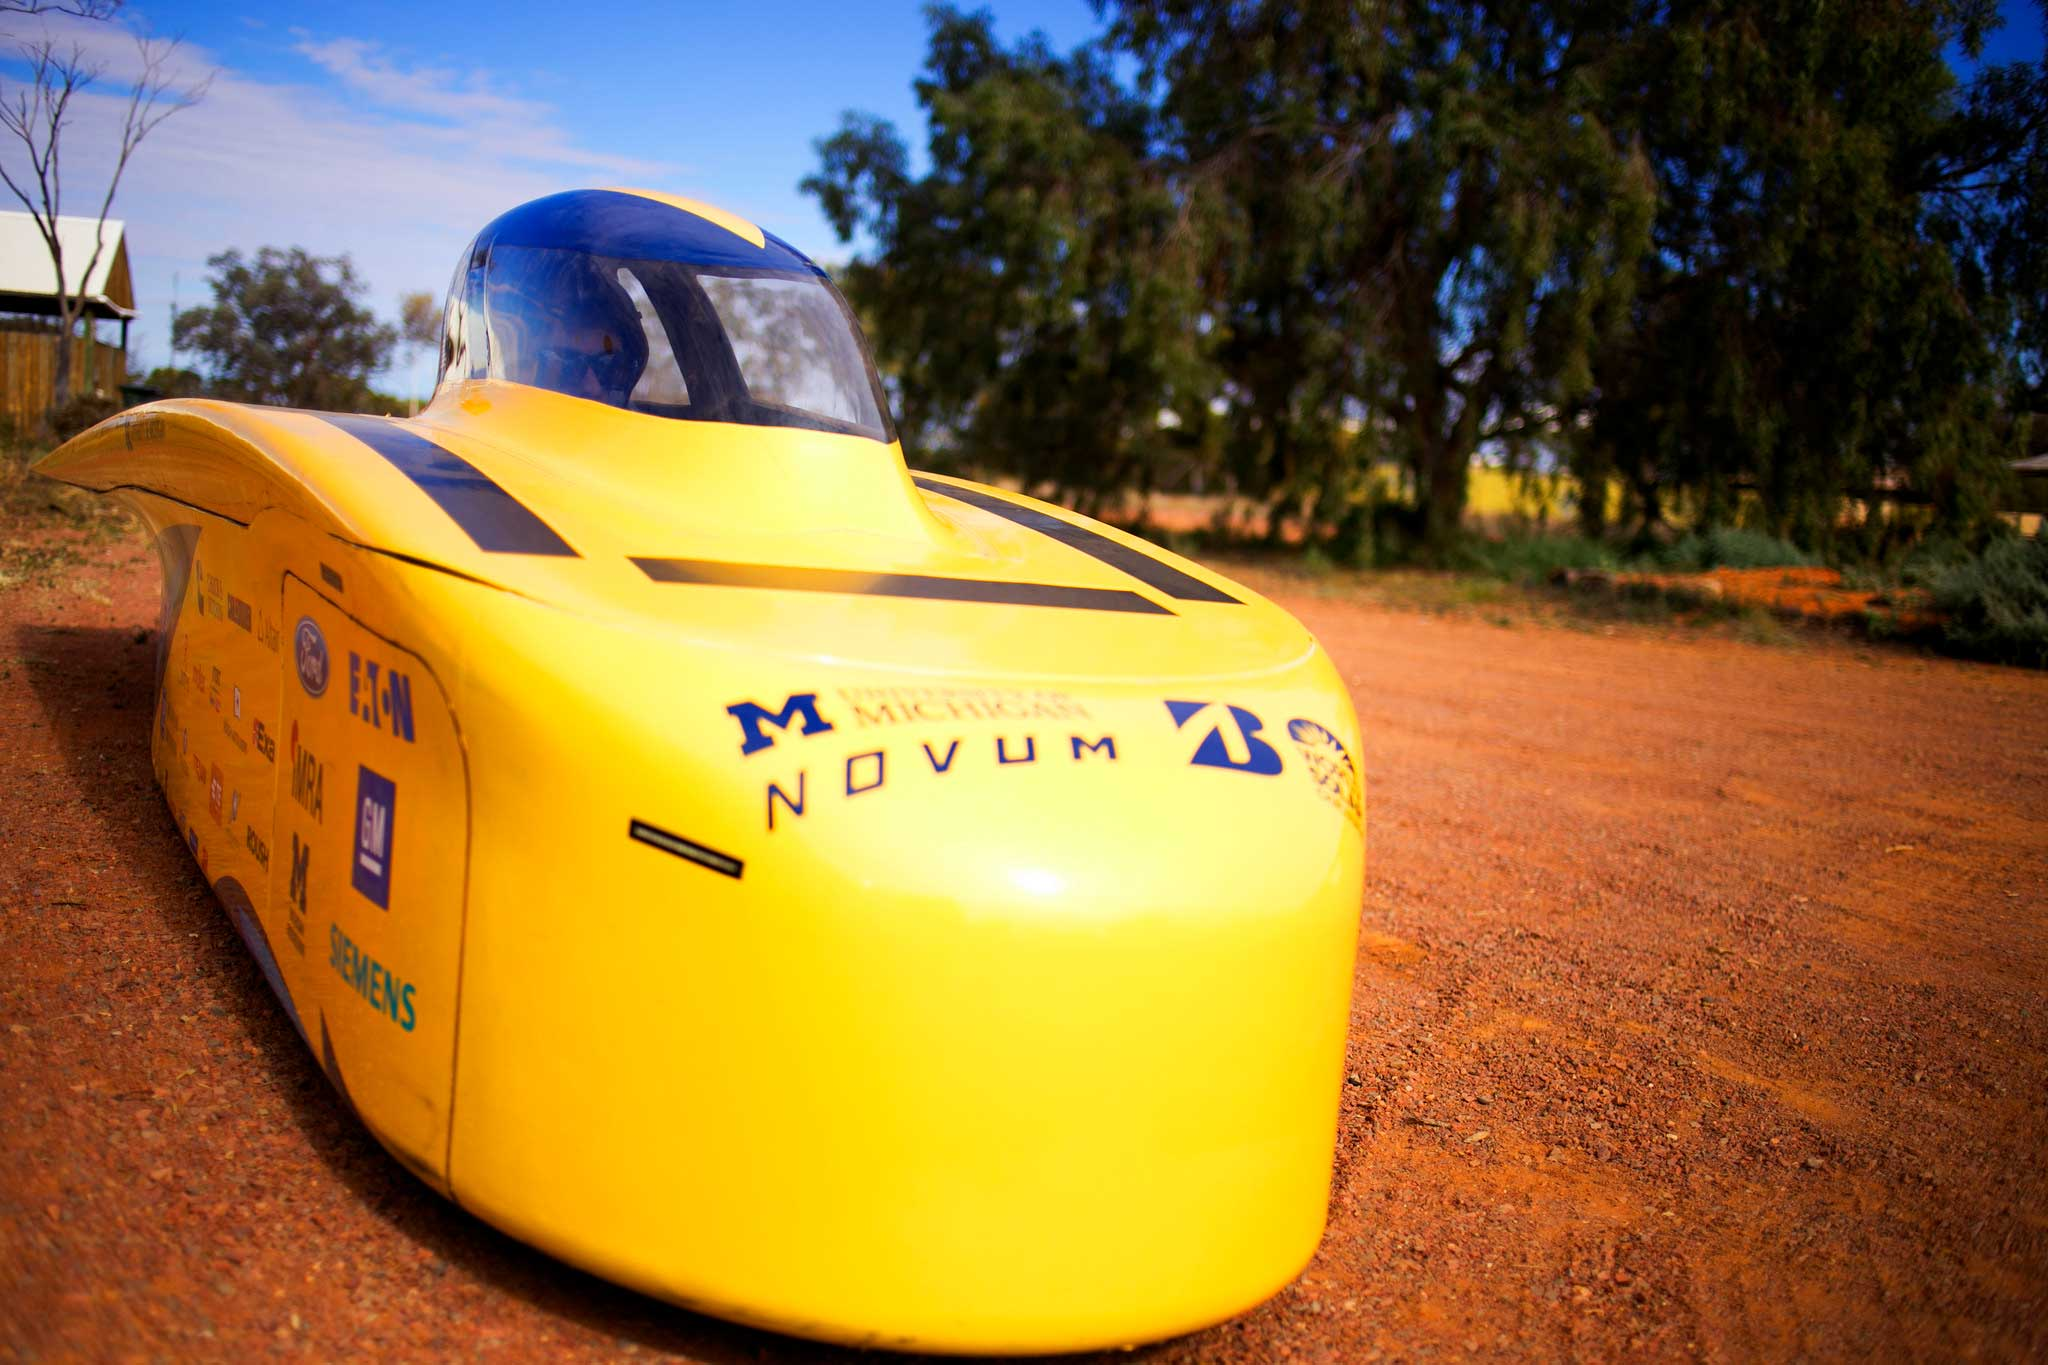 U-M's car, named Novum, measures just over one meter across. It's one of the skinniest vehicle competing in this year's challenger class. Novum is roughly 43 percent narrower than the team's 2015 vehicle, Aurum. Image credit: Akhil Kantipuly